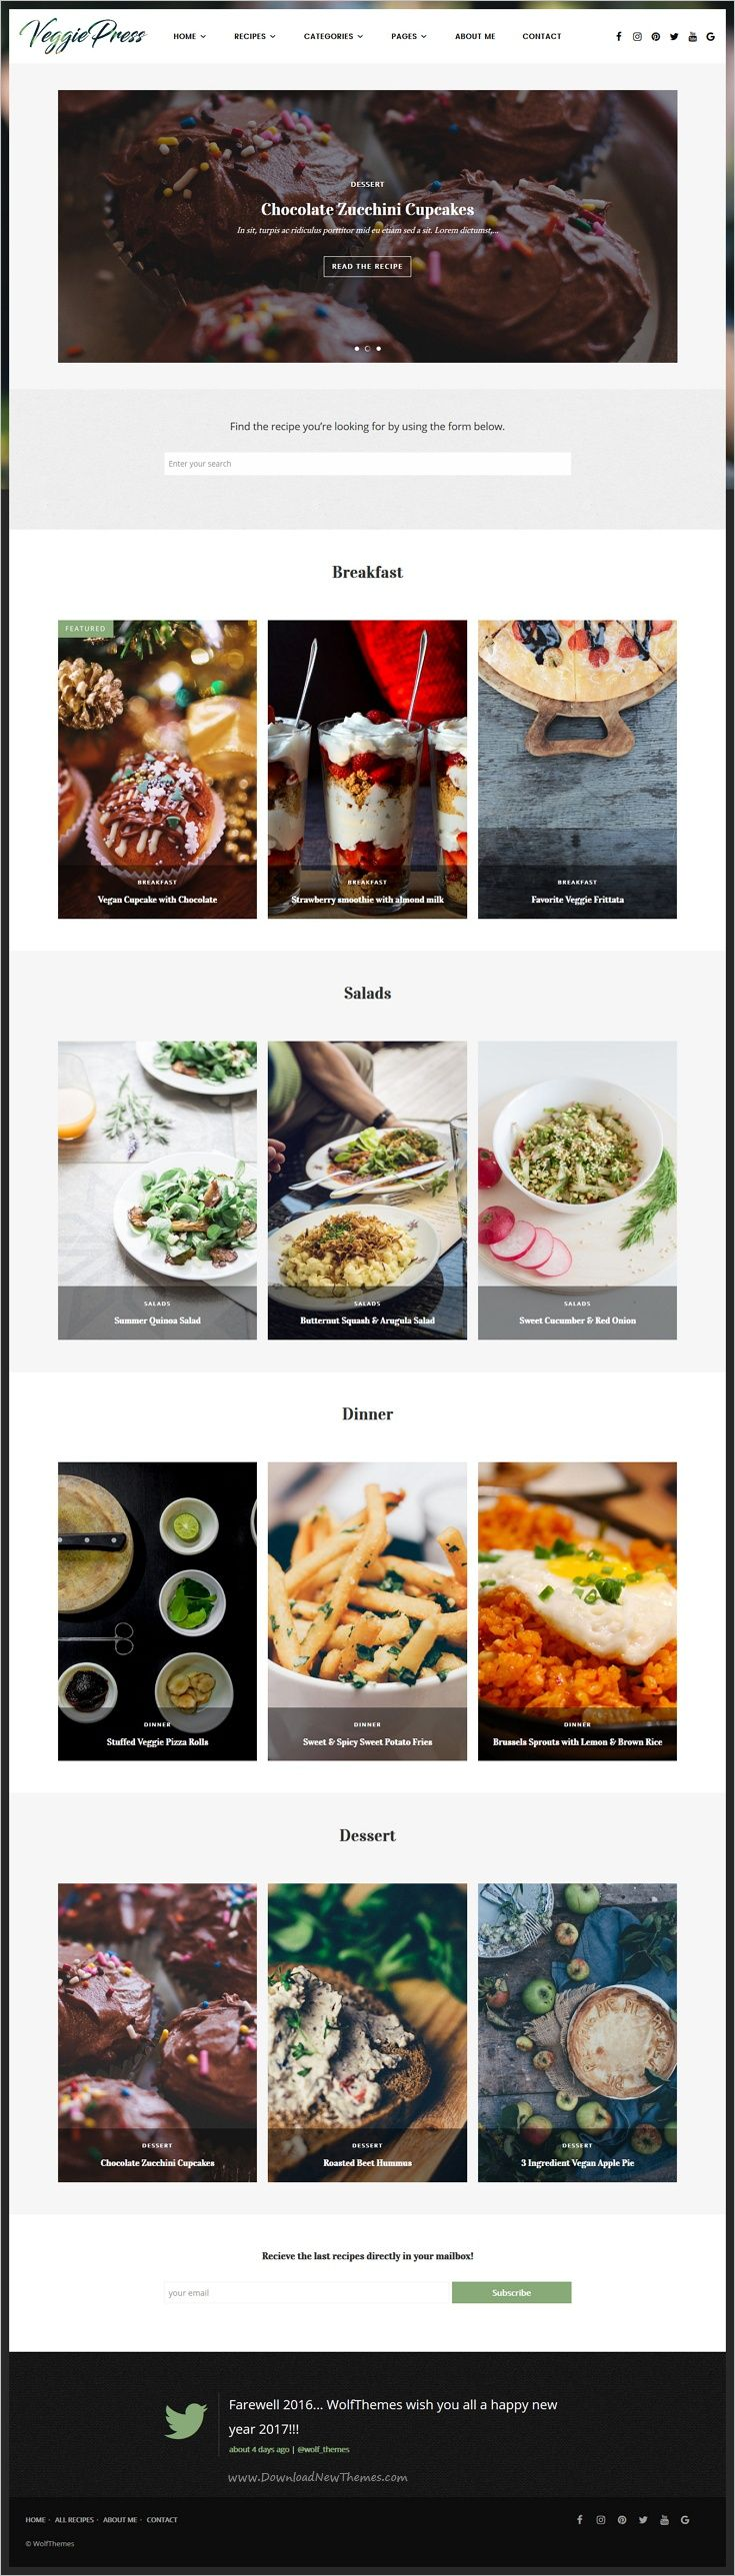 VeggiePress is an elegant responsive #WordPress Theme for #Food and #Recipe #blog with AJAX Navigation and Rating System download now➩ https://themeforest.net/item/veggiepress-food-recipe-wordpress-theme-with-ajax-navigation-and-rating-system/18774143?ref=Datasata